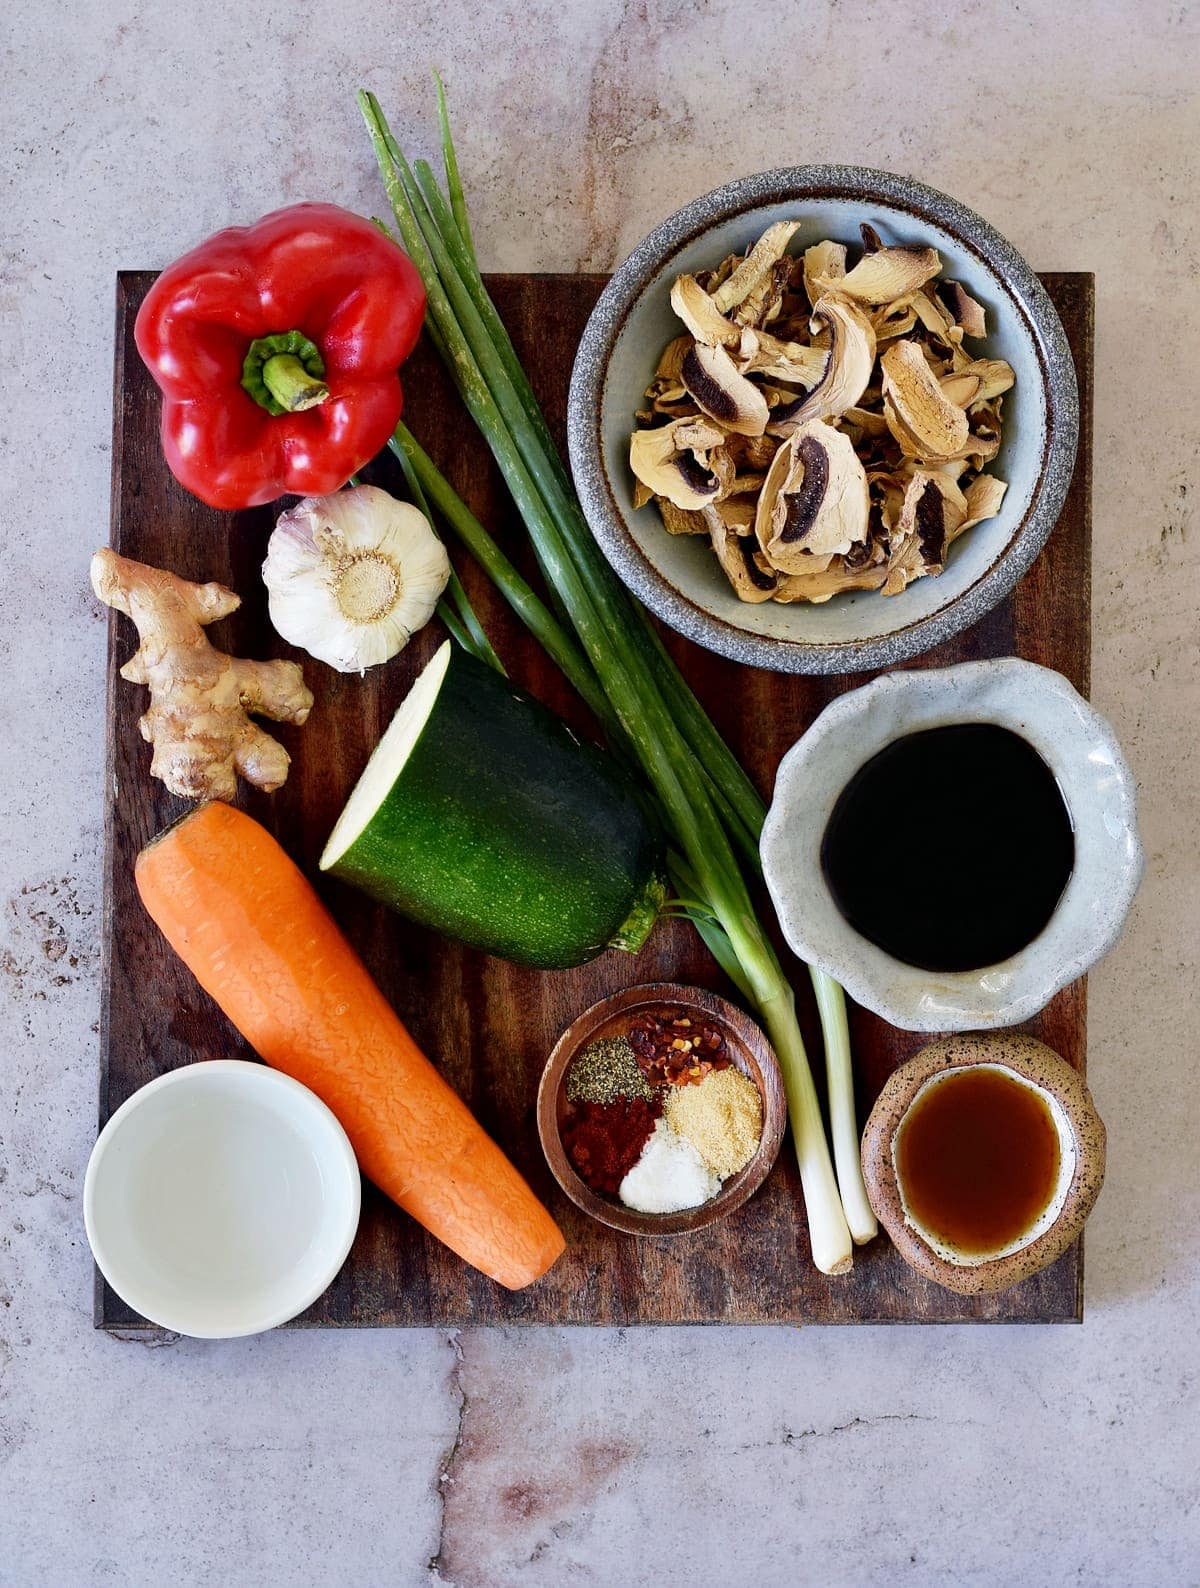 ingredients for asian vegetable stir-fry